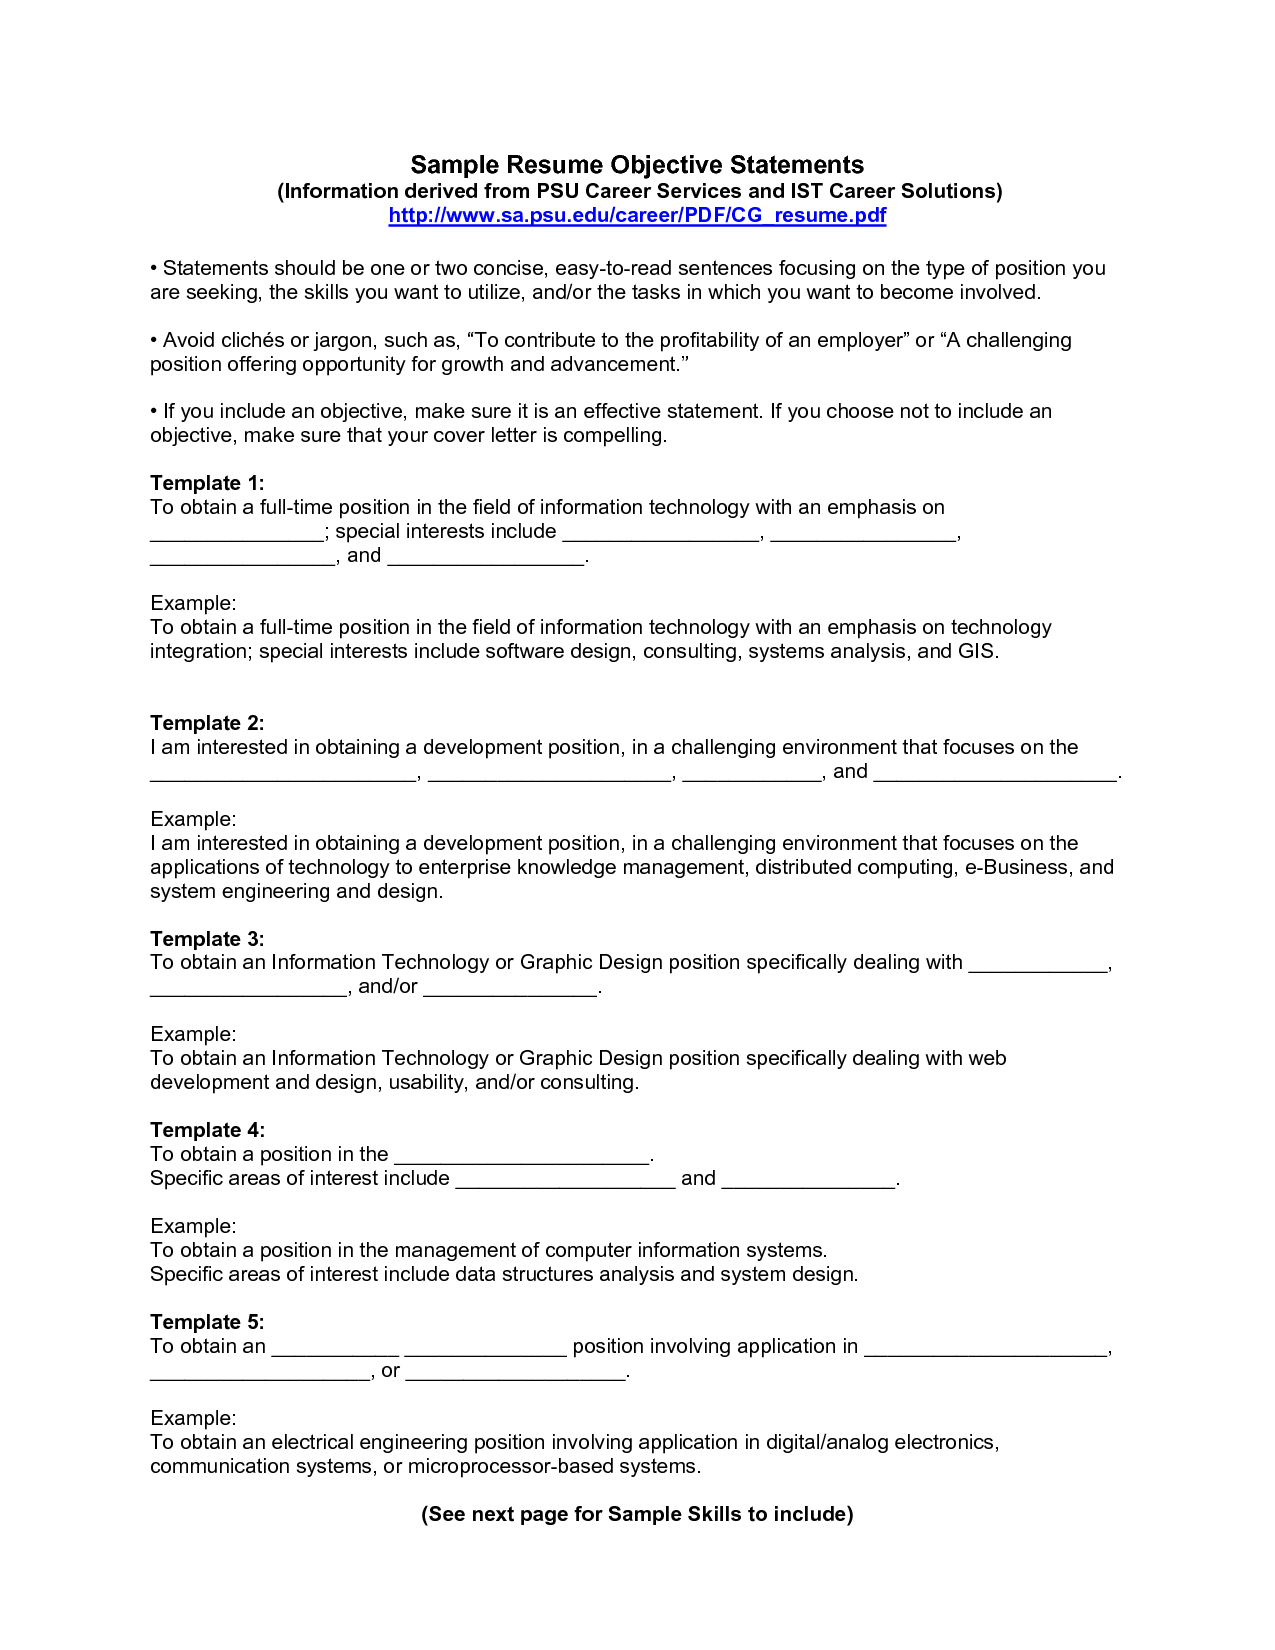 Sample Of Executive Assistant Resume 2016 Resume Objective Example Samplebusinessresume